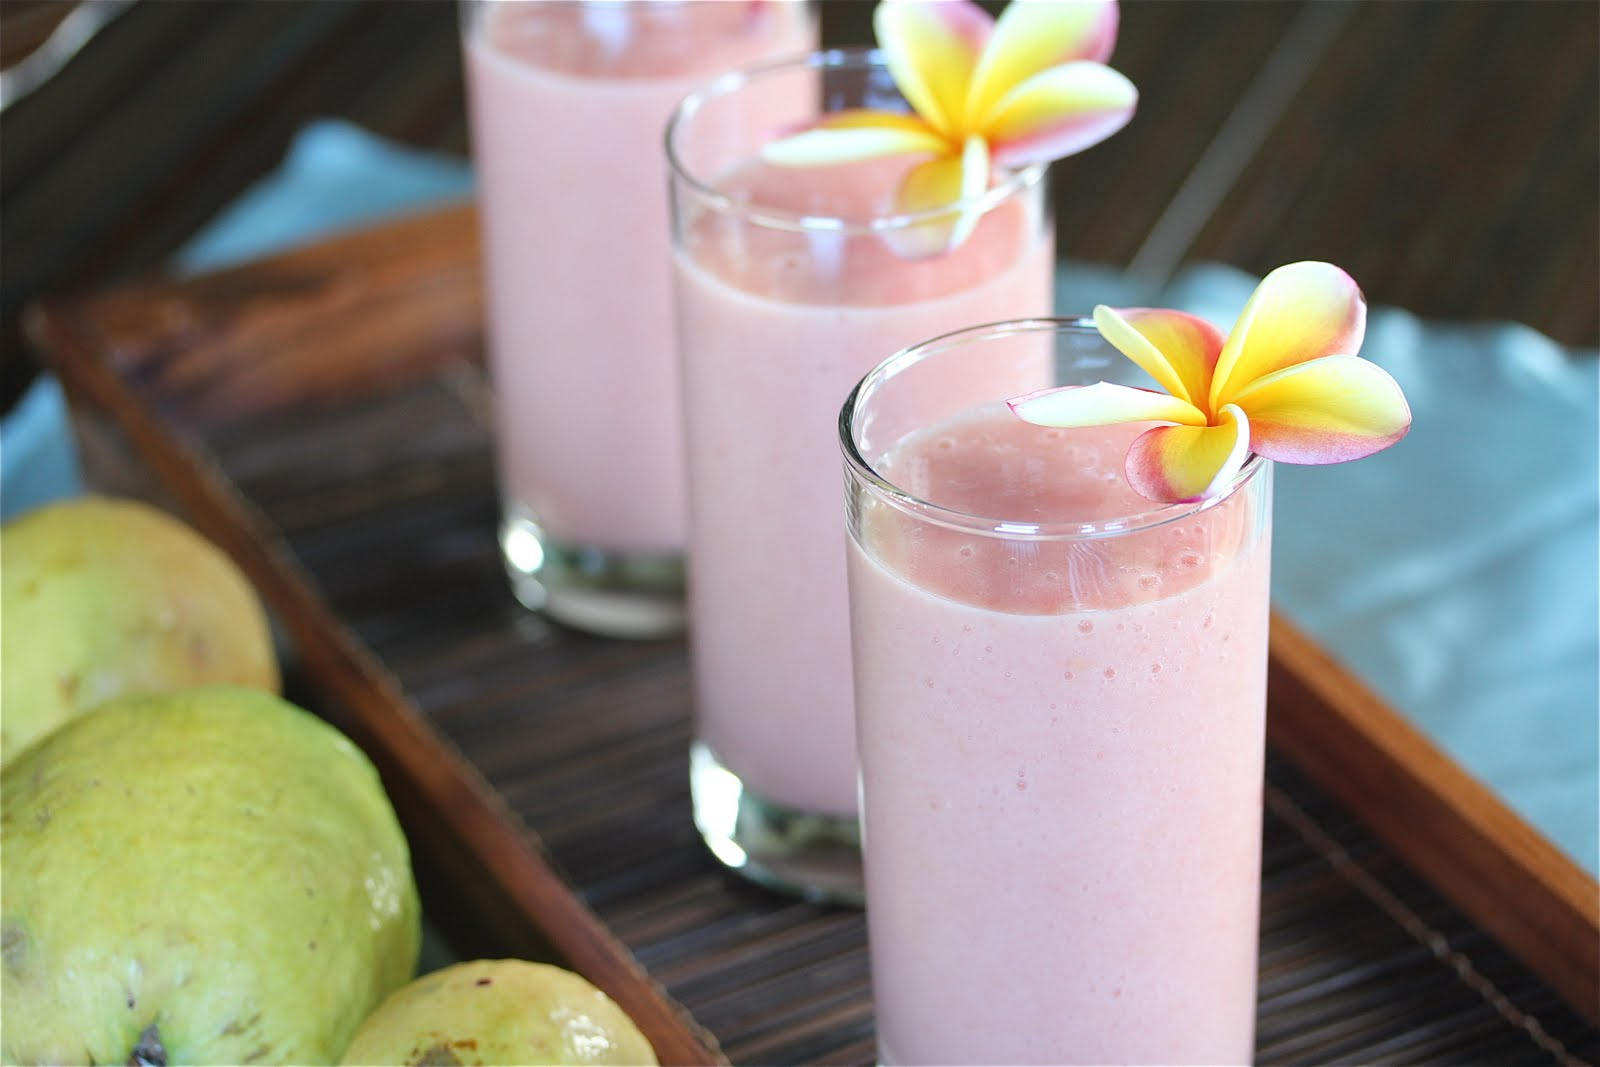 Tropical Smoothie made with fresh guava, pineapple and mango